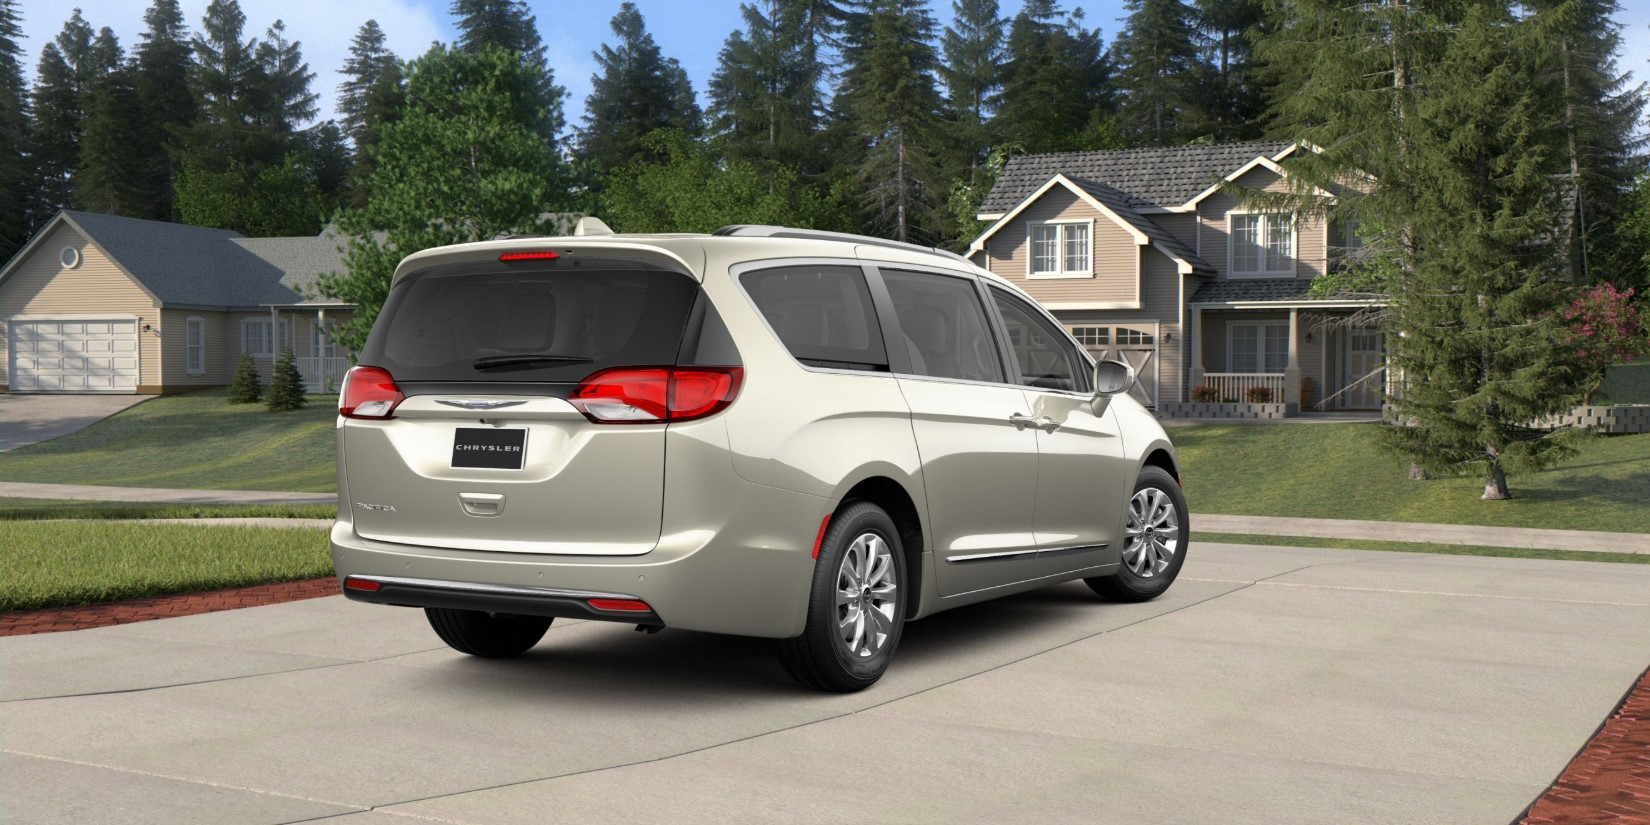 2019 Chrysler Pacifica Touring L White Pearl Exterior Rear Picture